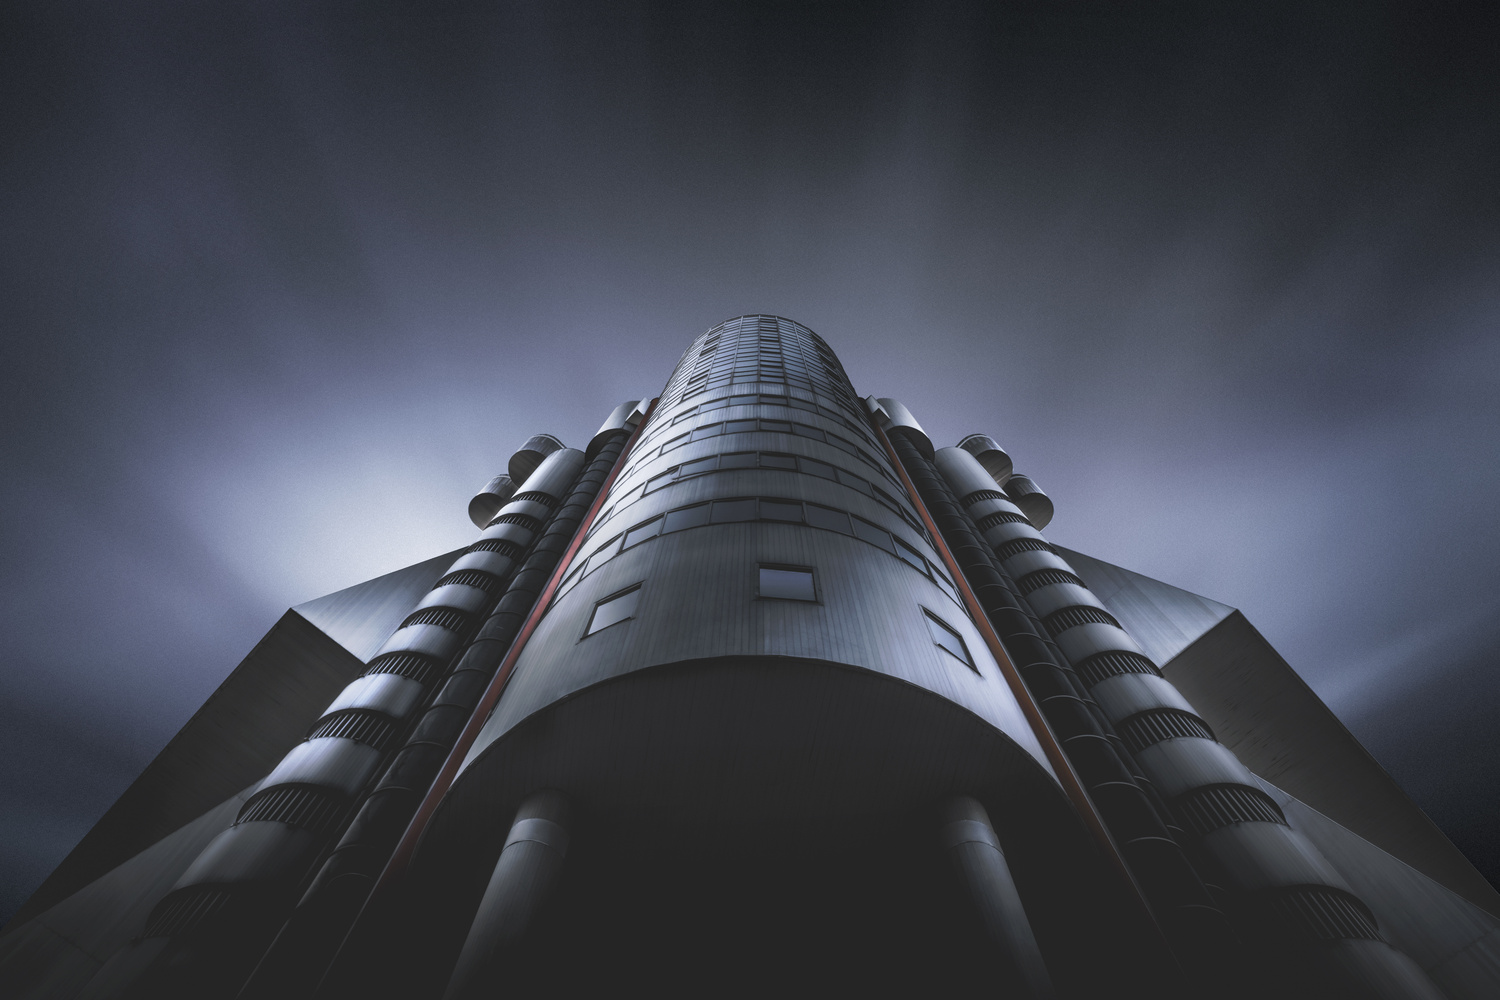 Goldis Tower by Amirhossein Naghian